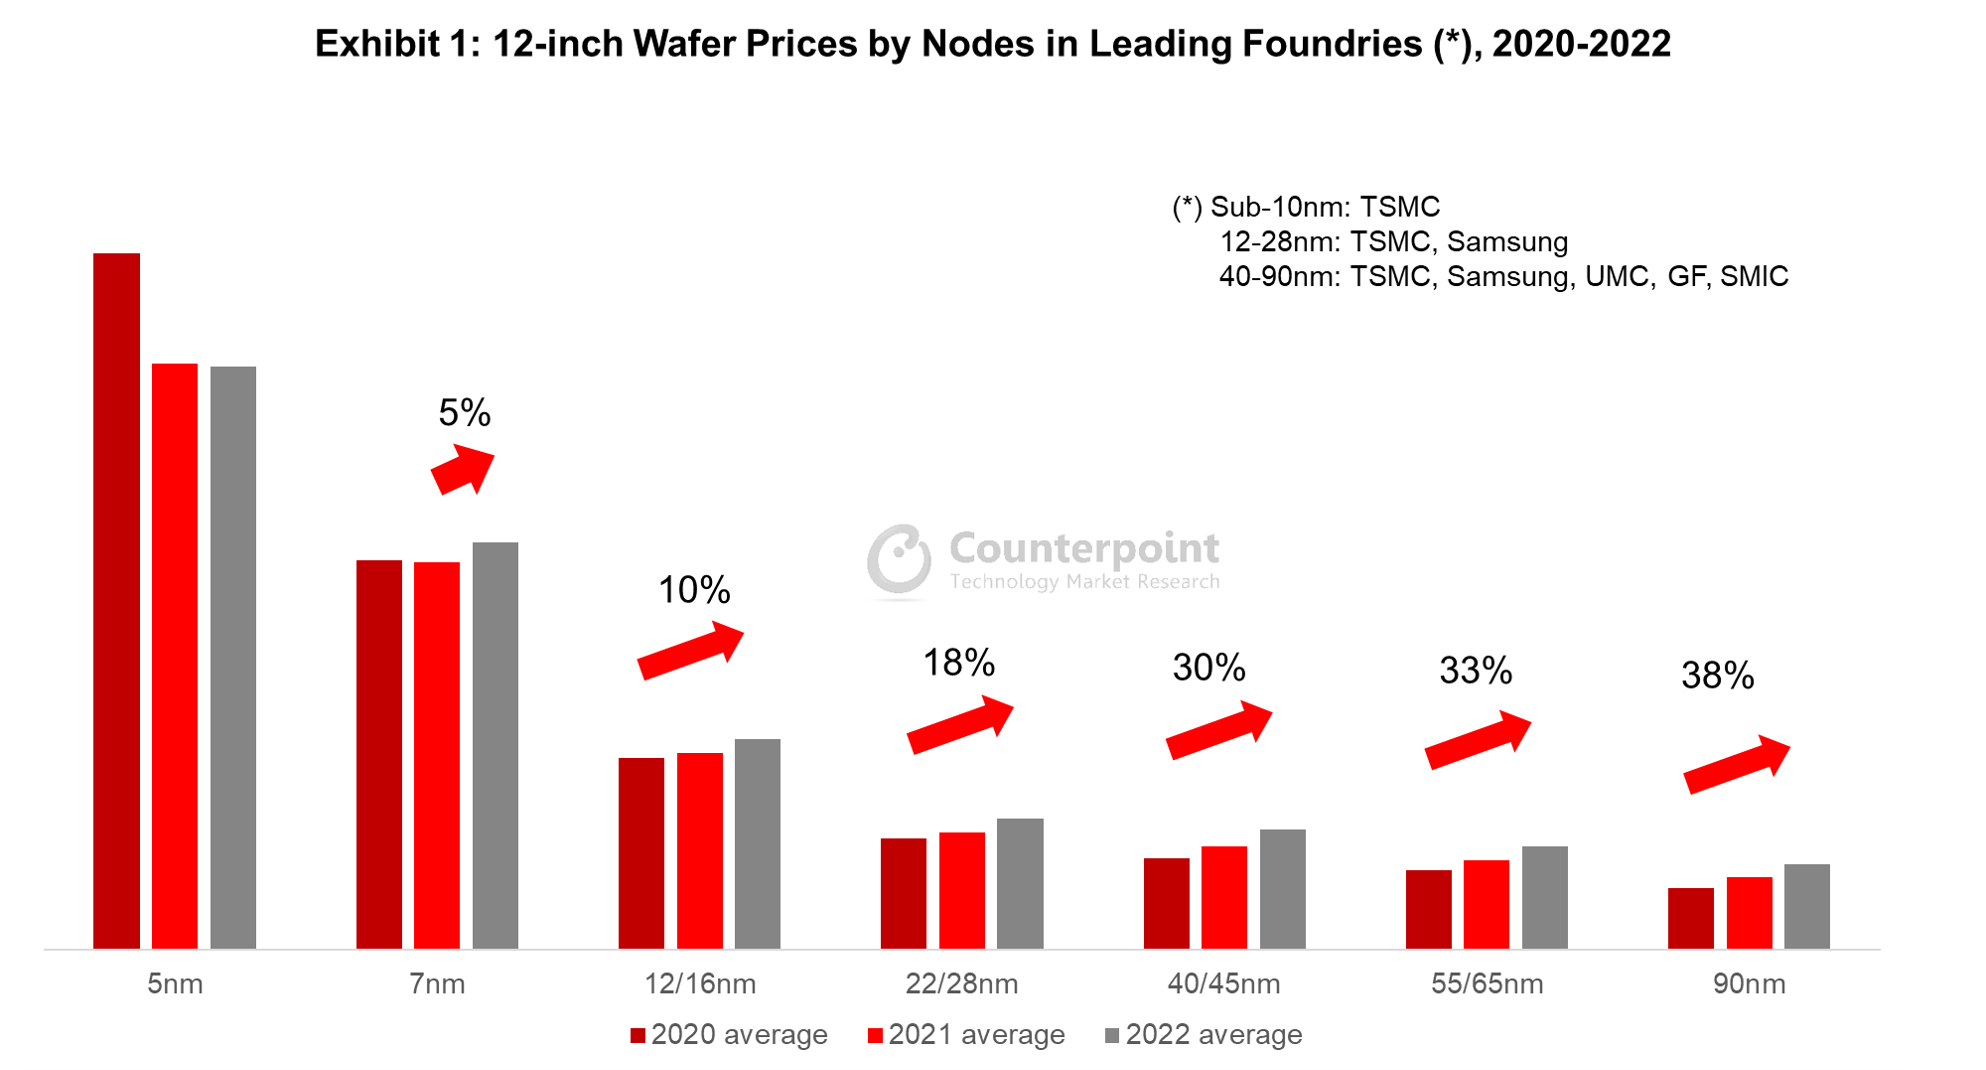 12-inch Wafer Prices by Nodes in Leading Foundries, 2020-2022